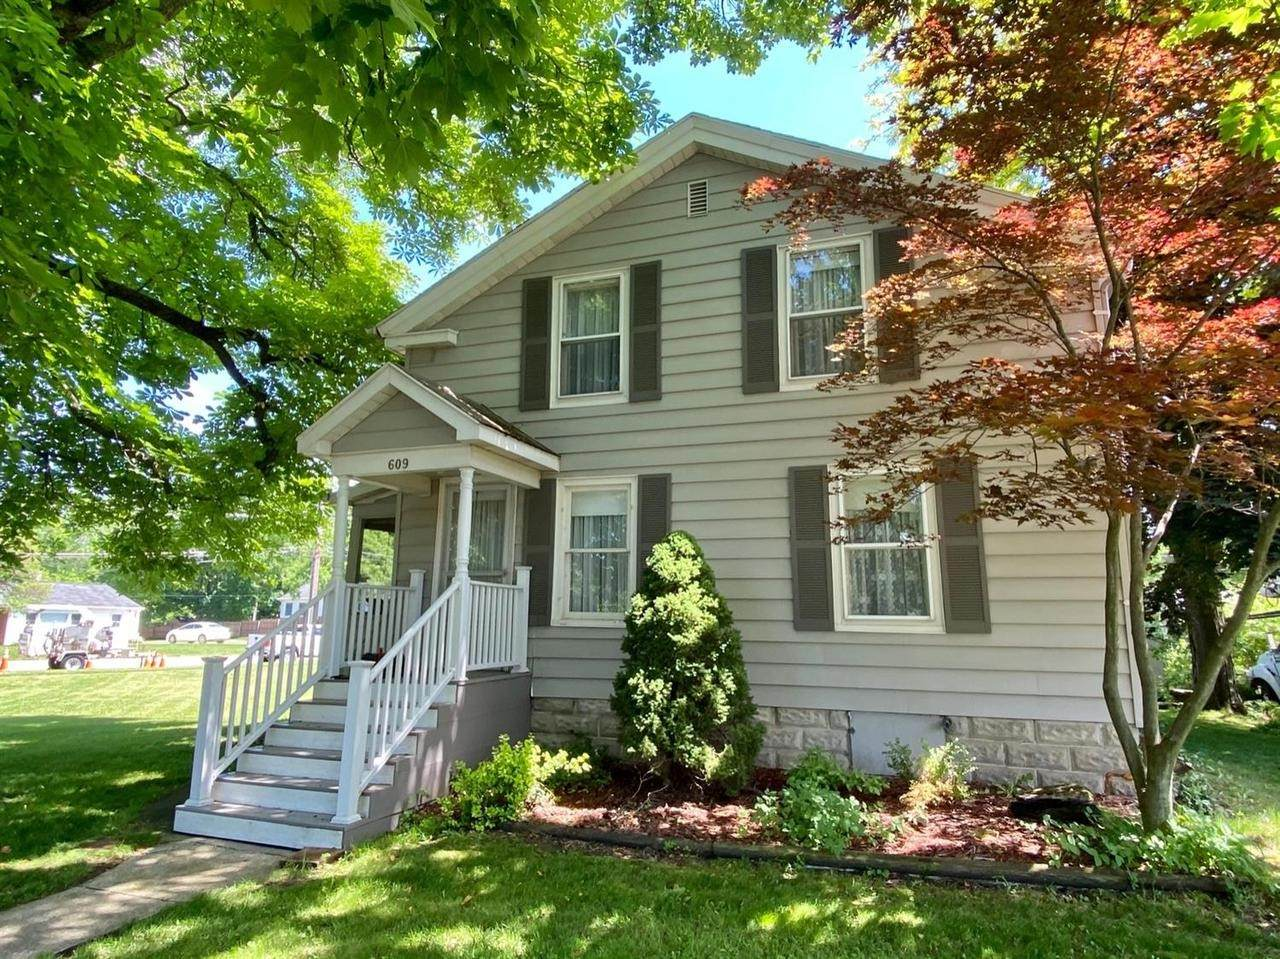 609 Middle St - Photo 1